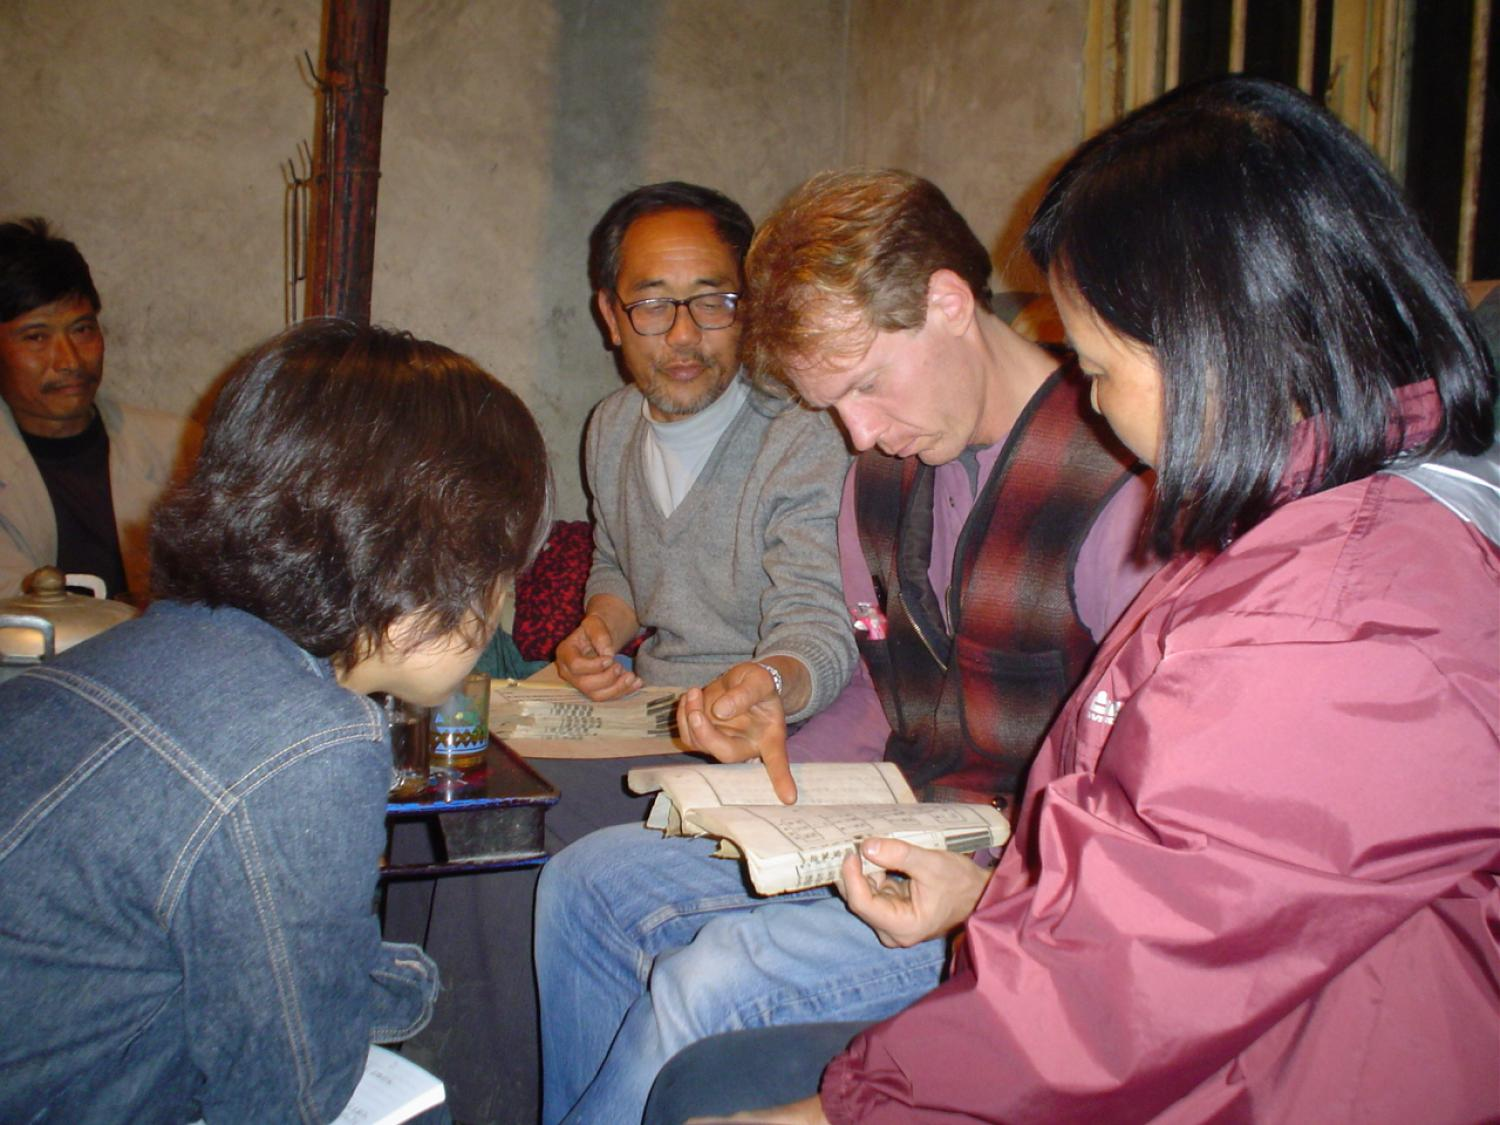 Seated caucasian man examining book with Asian men, woman, and children seated around him